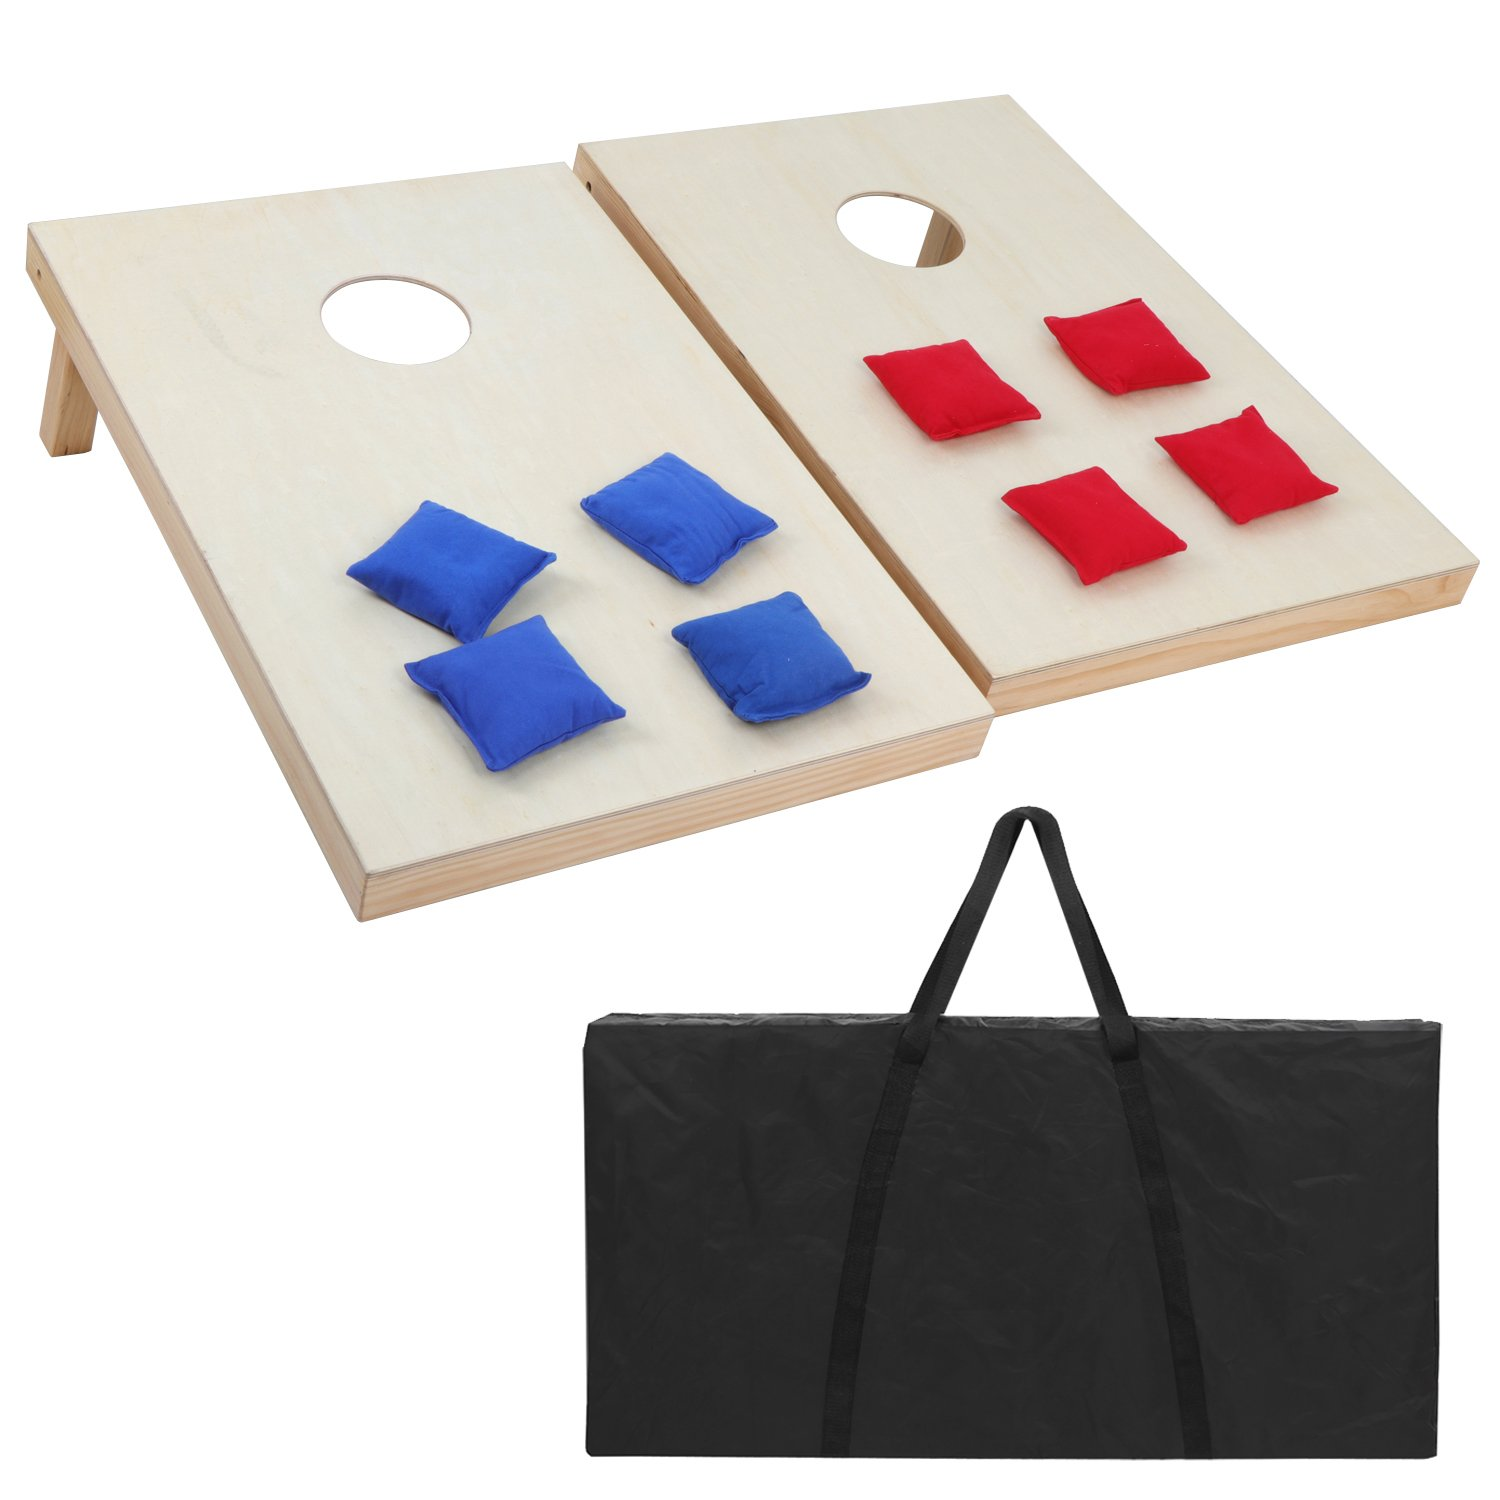 F2C Portable Aluminum/Wood/PVC Framed Bean Bag CornHole Toss Game Set Boards 3FT2FT/4FT2FT with 8 Bean Bags and Carrying Case| Original Black, Classic Red& Blue to Choose by F2C